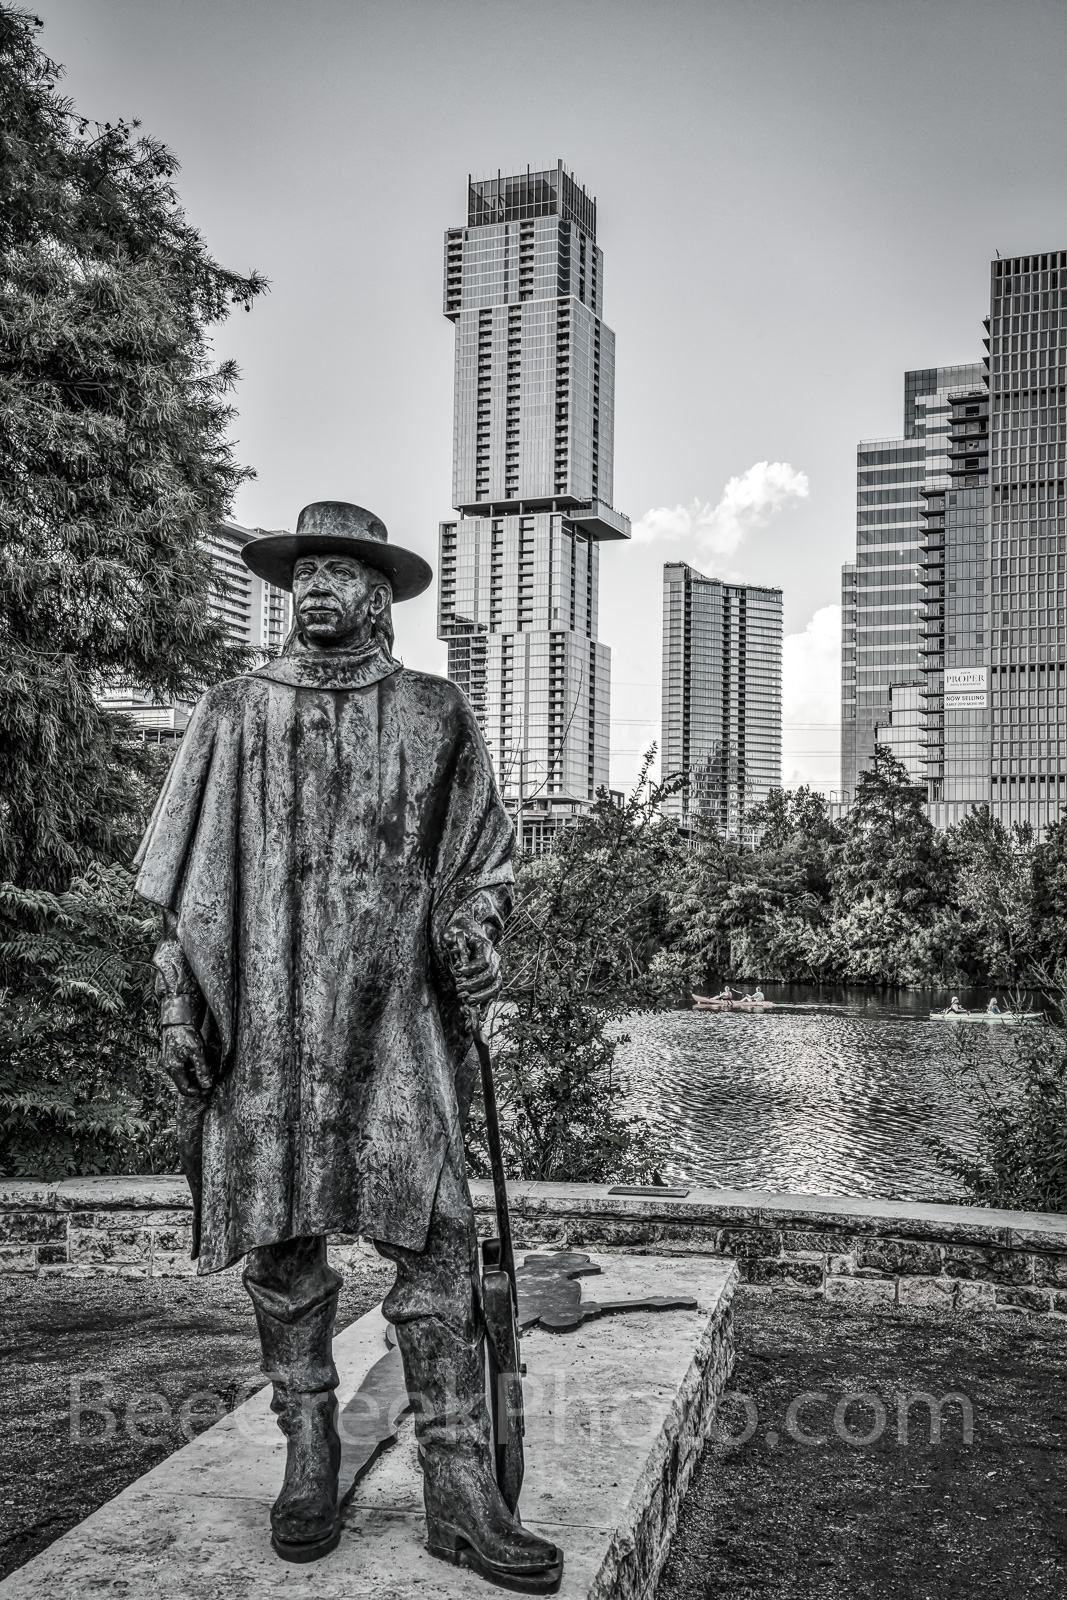 Austin, Stevie Vaughan statue, BW, black and white, bronze, Independent, Jingle, high rise, skyscraper, Lady Bird Lake, Butler hike and bike trail, blues, guitar, rock and roll hall of fame, music,, photo